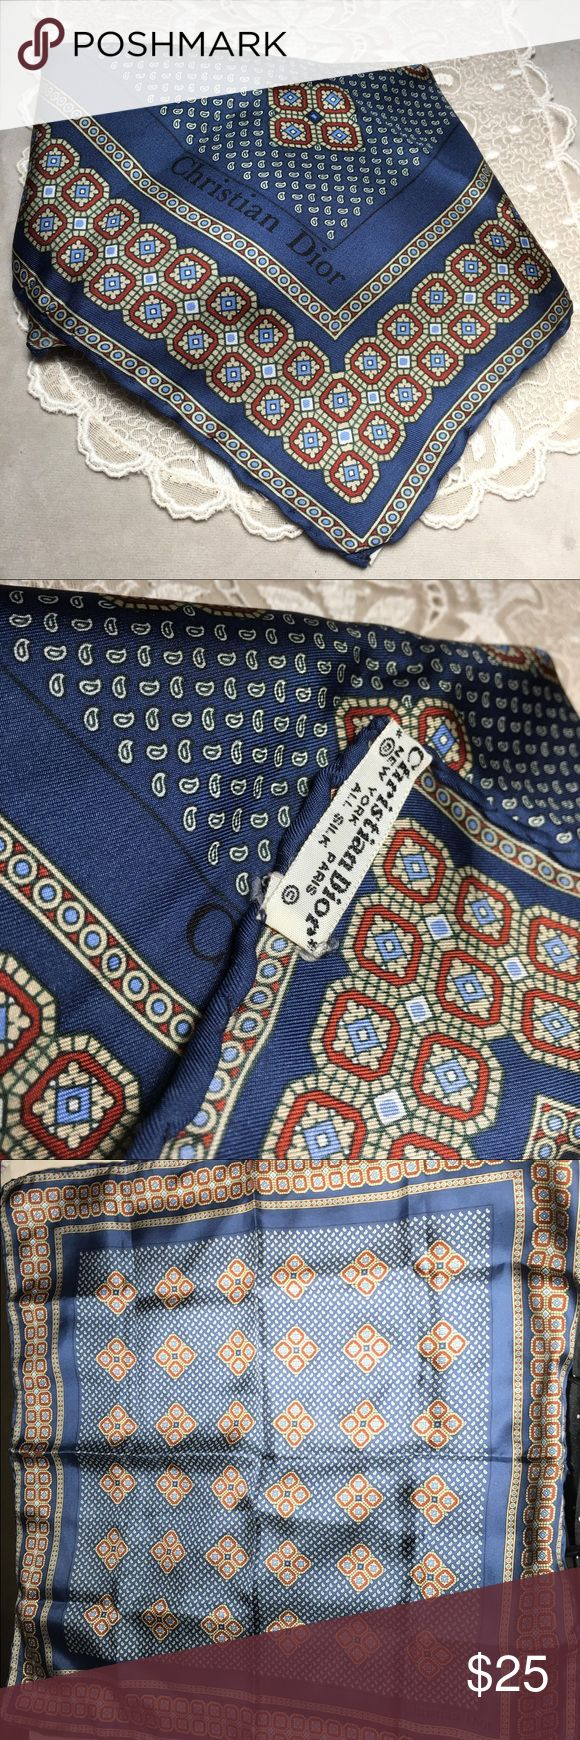 """Christian Dior Silk Pocket Square/handkerchief Gorgeous 100% silk Christian Dior pocket square/handkerchief. Vintage. Lovely blue geometric and paisley pattern. Measures 18.5"""" x 18.5"""". Excellent condition. Christian Dior Accessories Pocket Squares"""